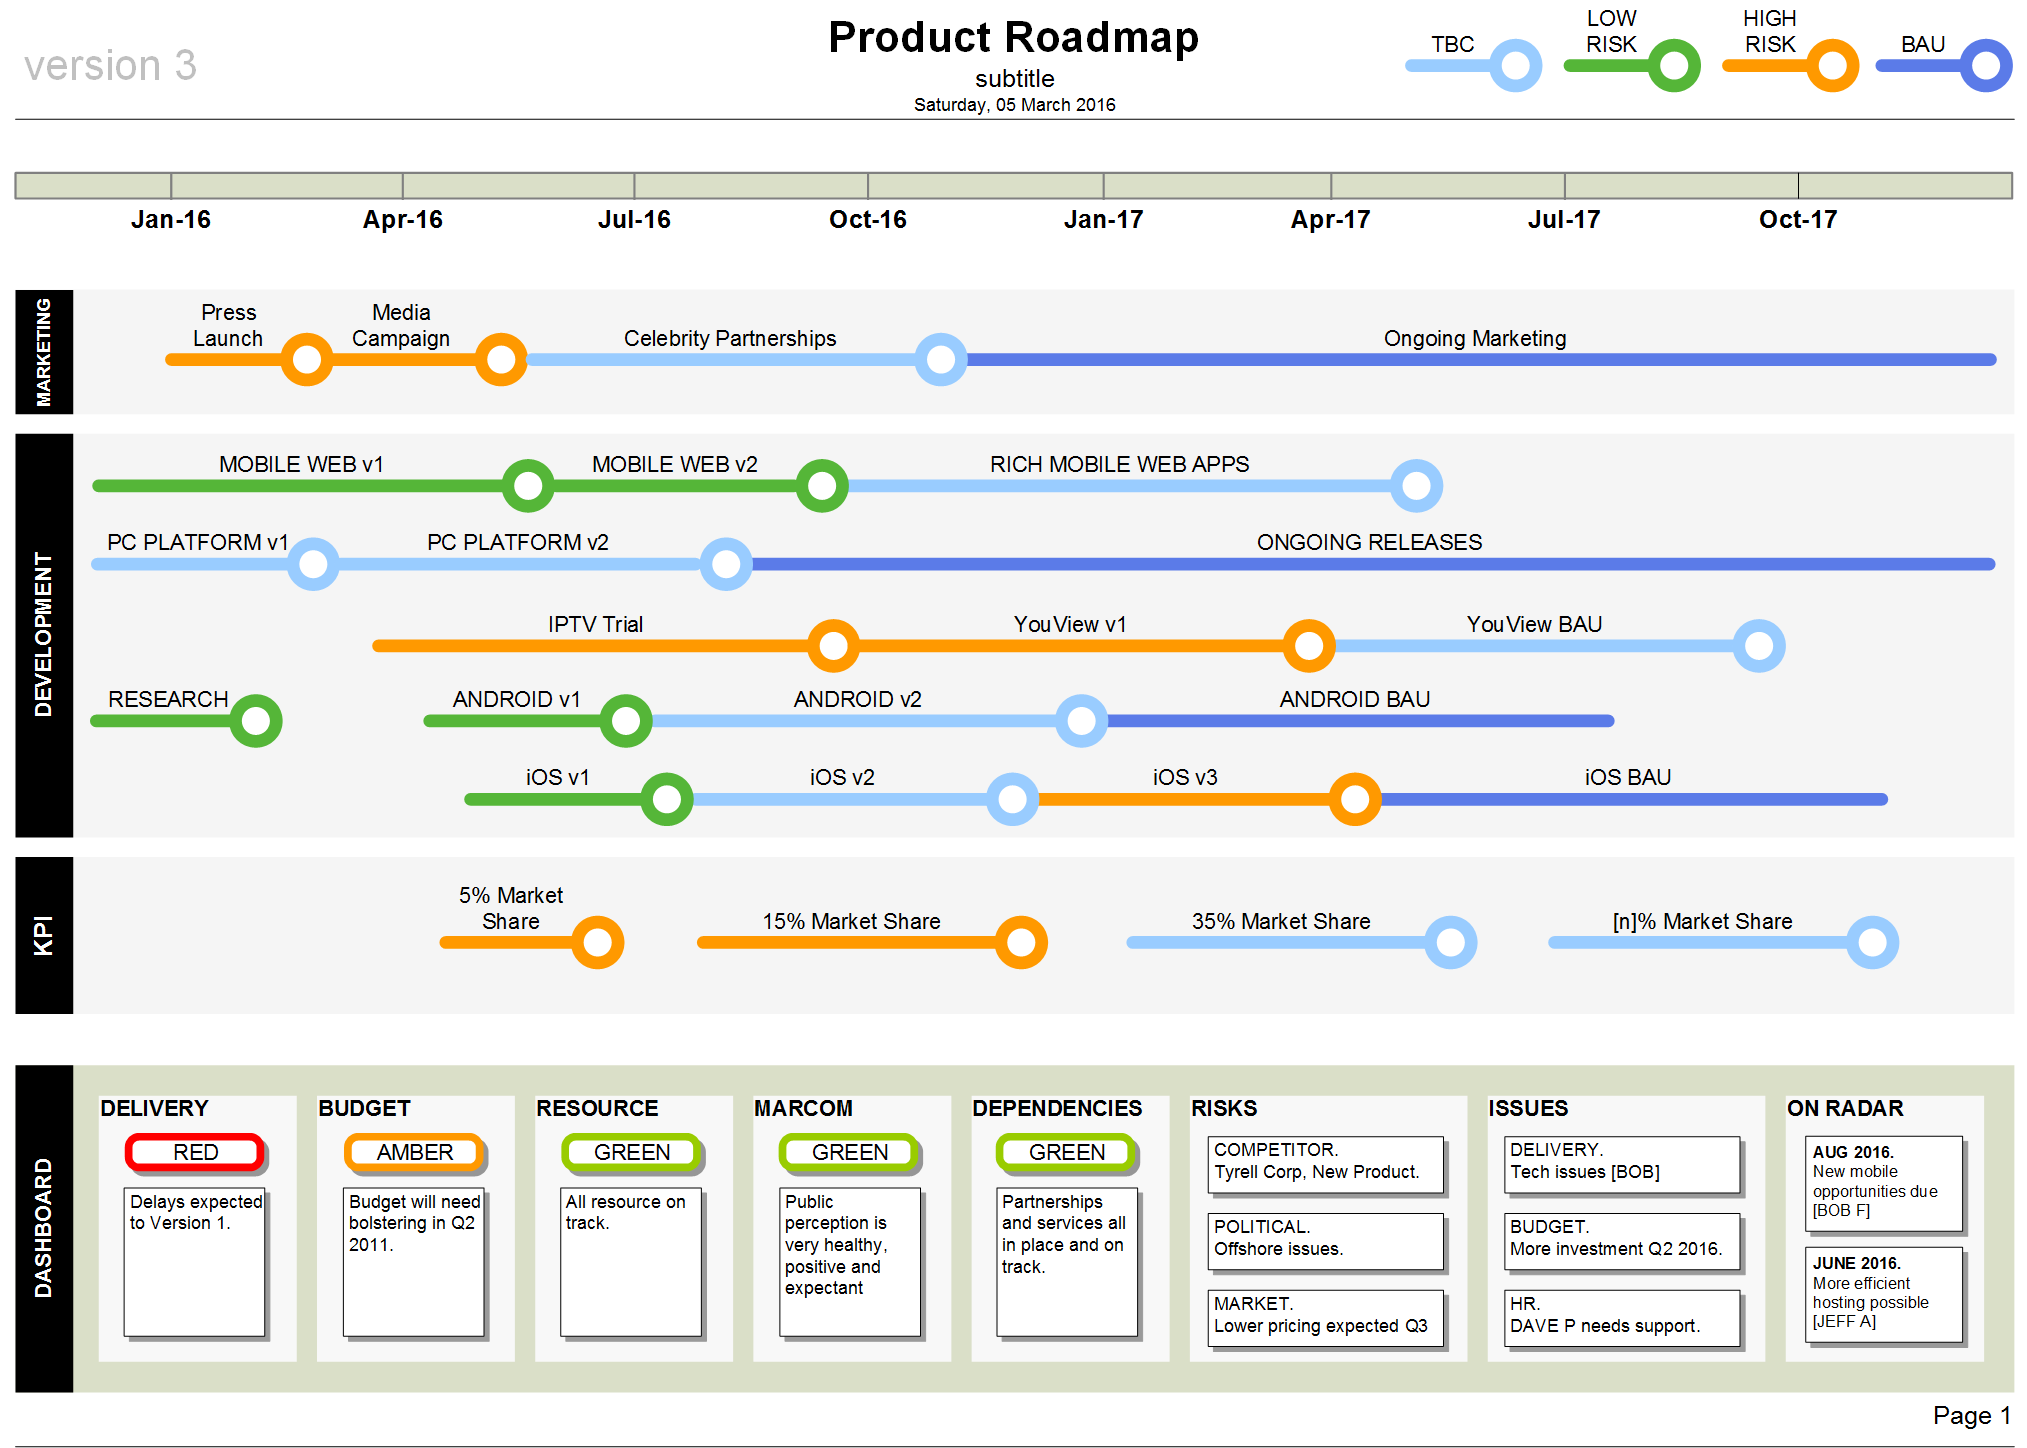 Product Roadmap Template Visio Project Management Pinterest - Company roadmap template